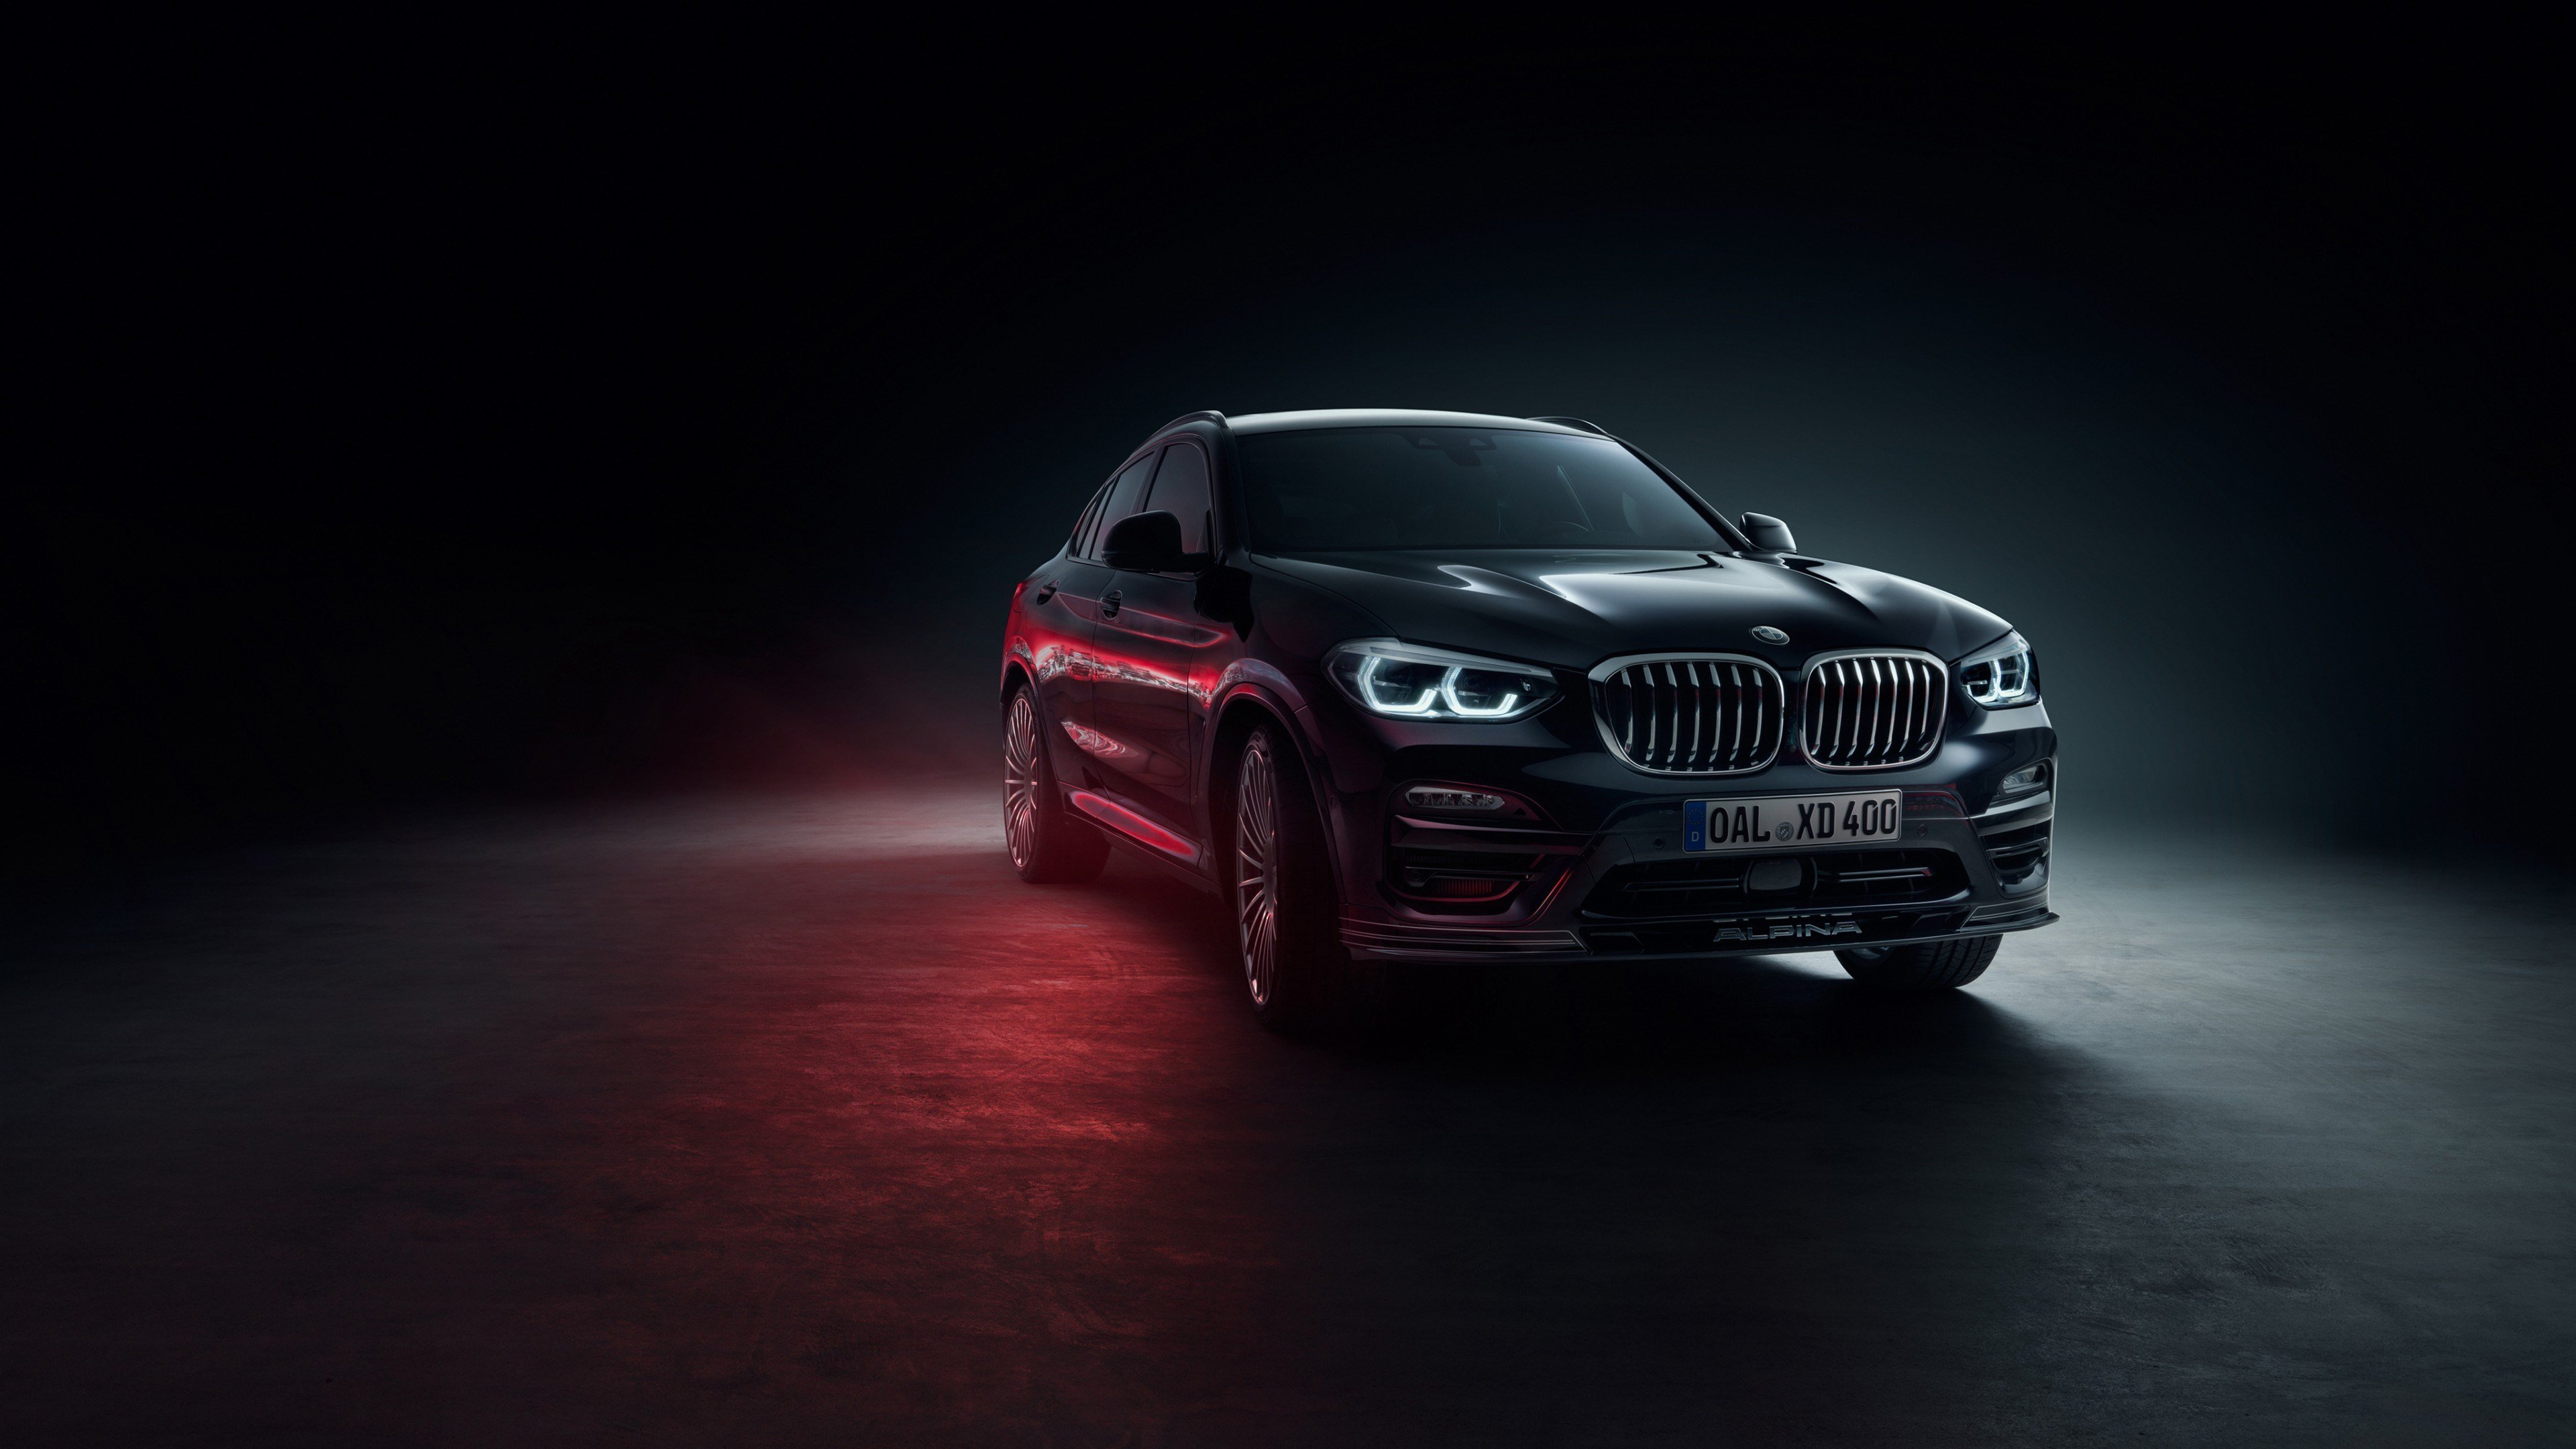 Latest 2018 Alpina Bmw Xd4 Allrad 4K 4 Wallpaper Hd Car Free Download